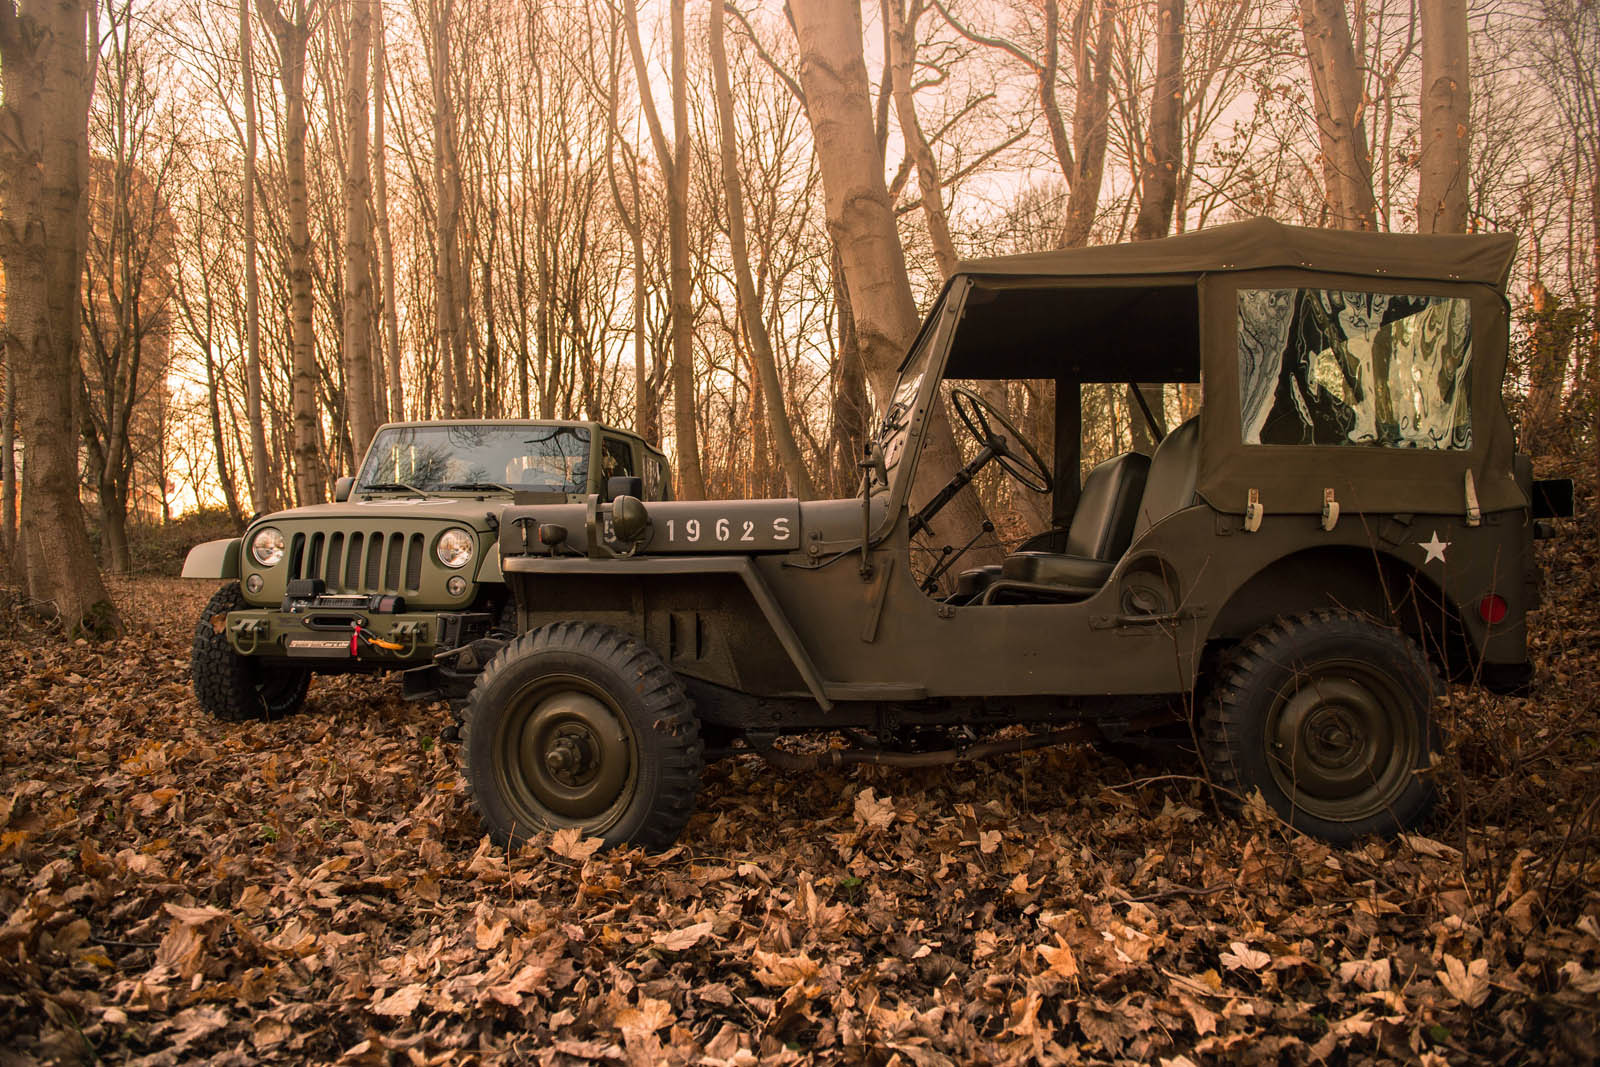 Jeep Wrangler Willys by Geiger Cars (17)